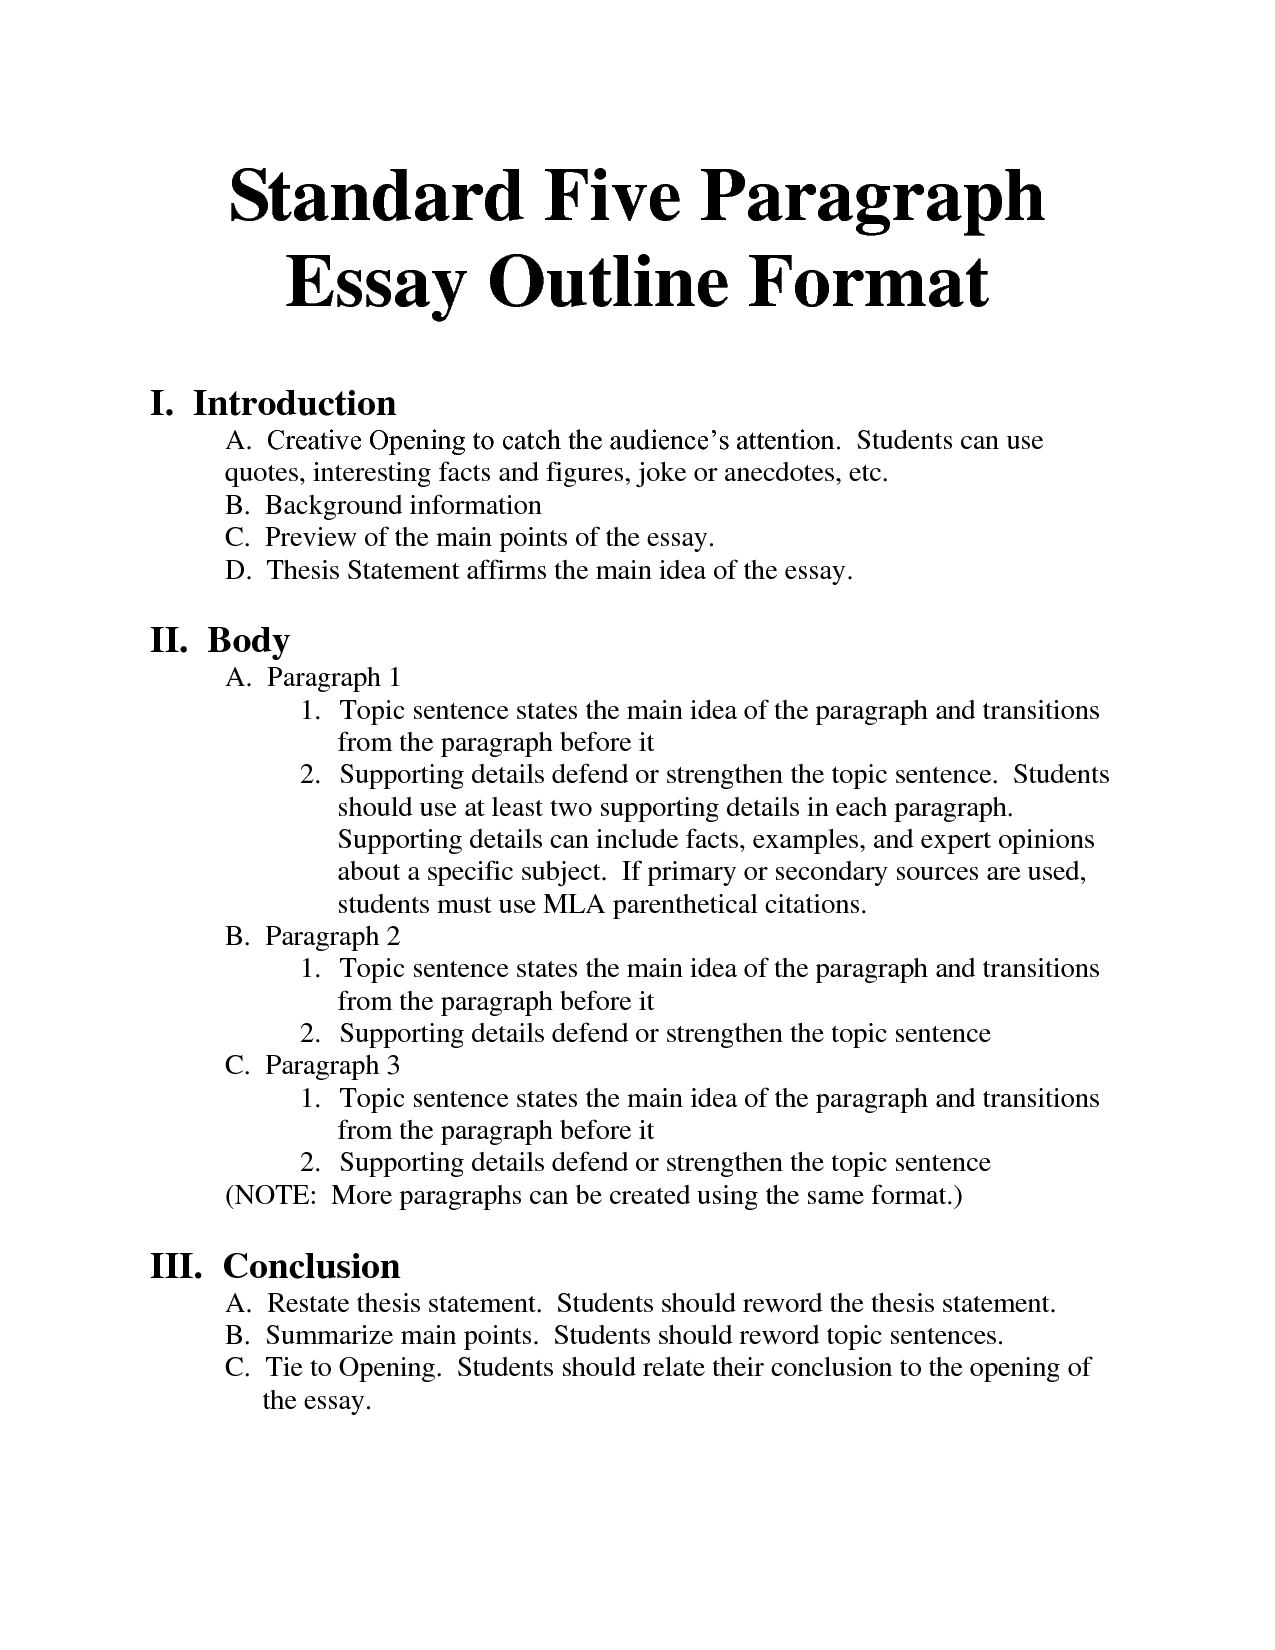 009 Essay Example The Basics Of Stunning Writing Art Pdf Nigel Warburton Full